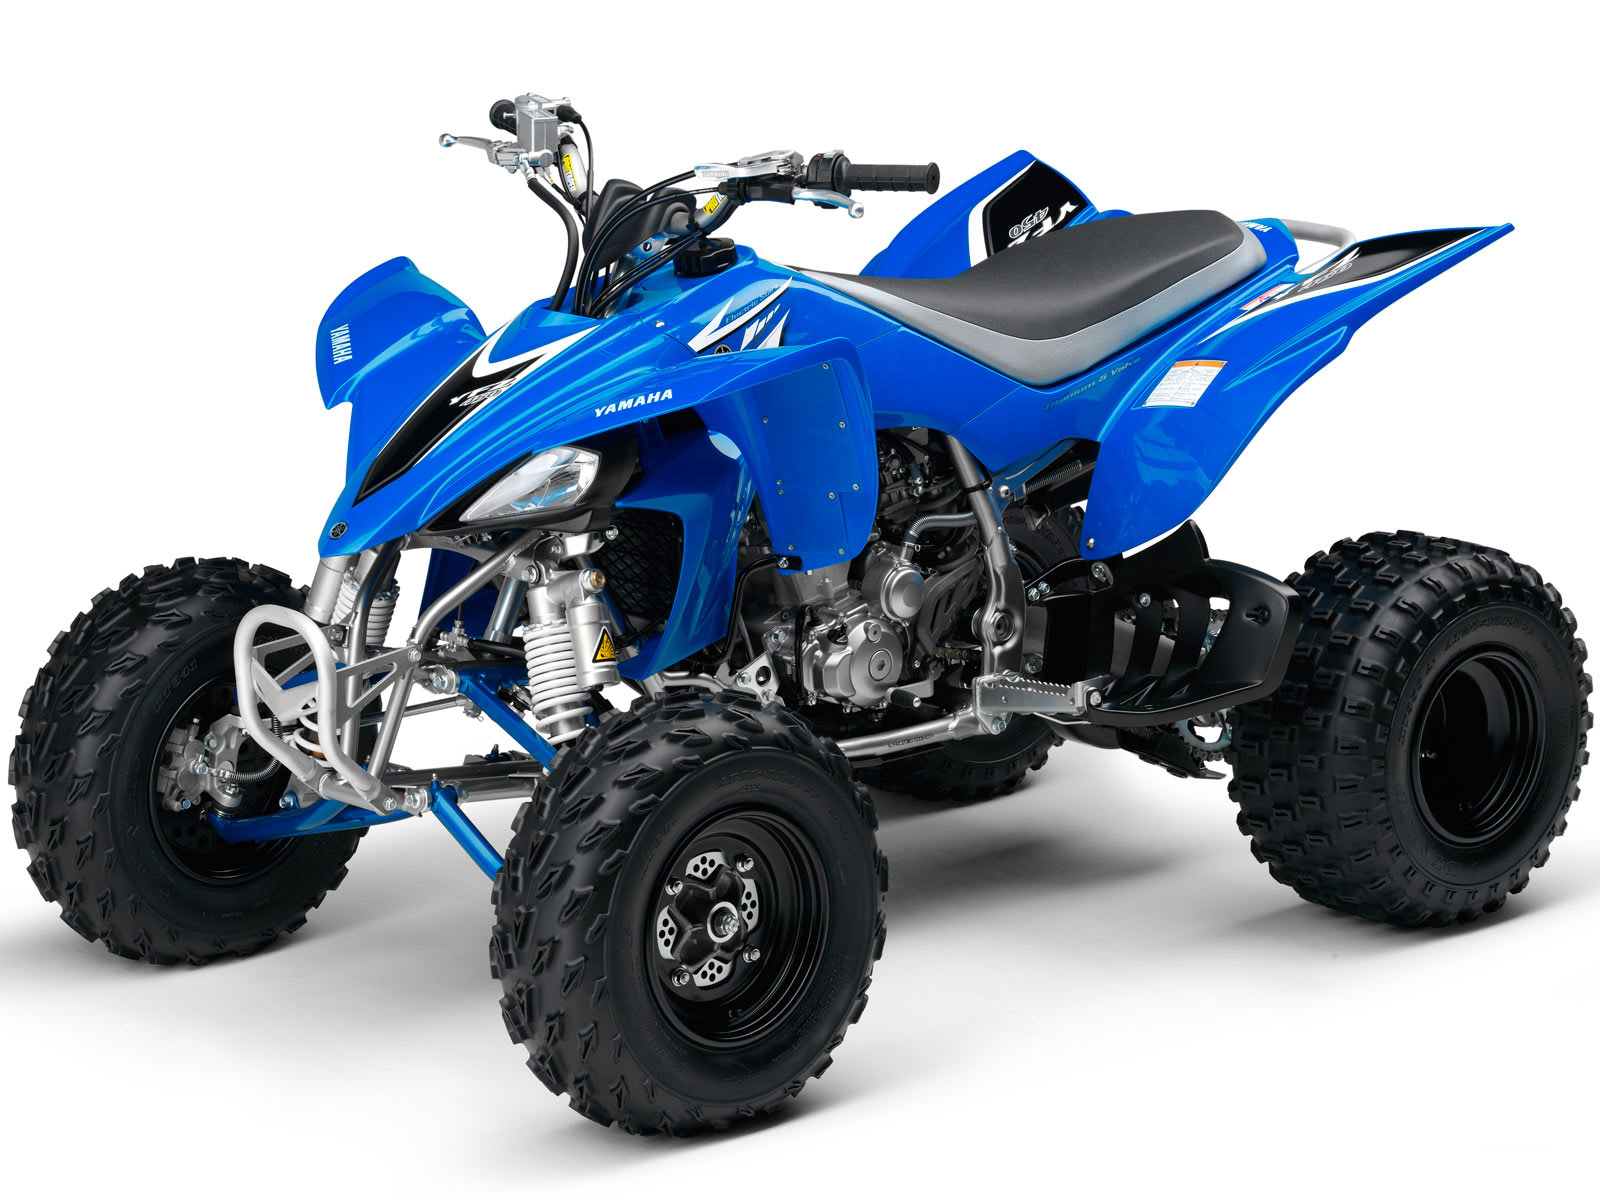 2008 Yamaha Yfz 450 Atv Pictures Specs Accident Lawyers Info Yzf Wiring Diagram